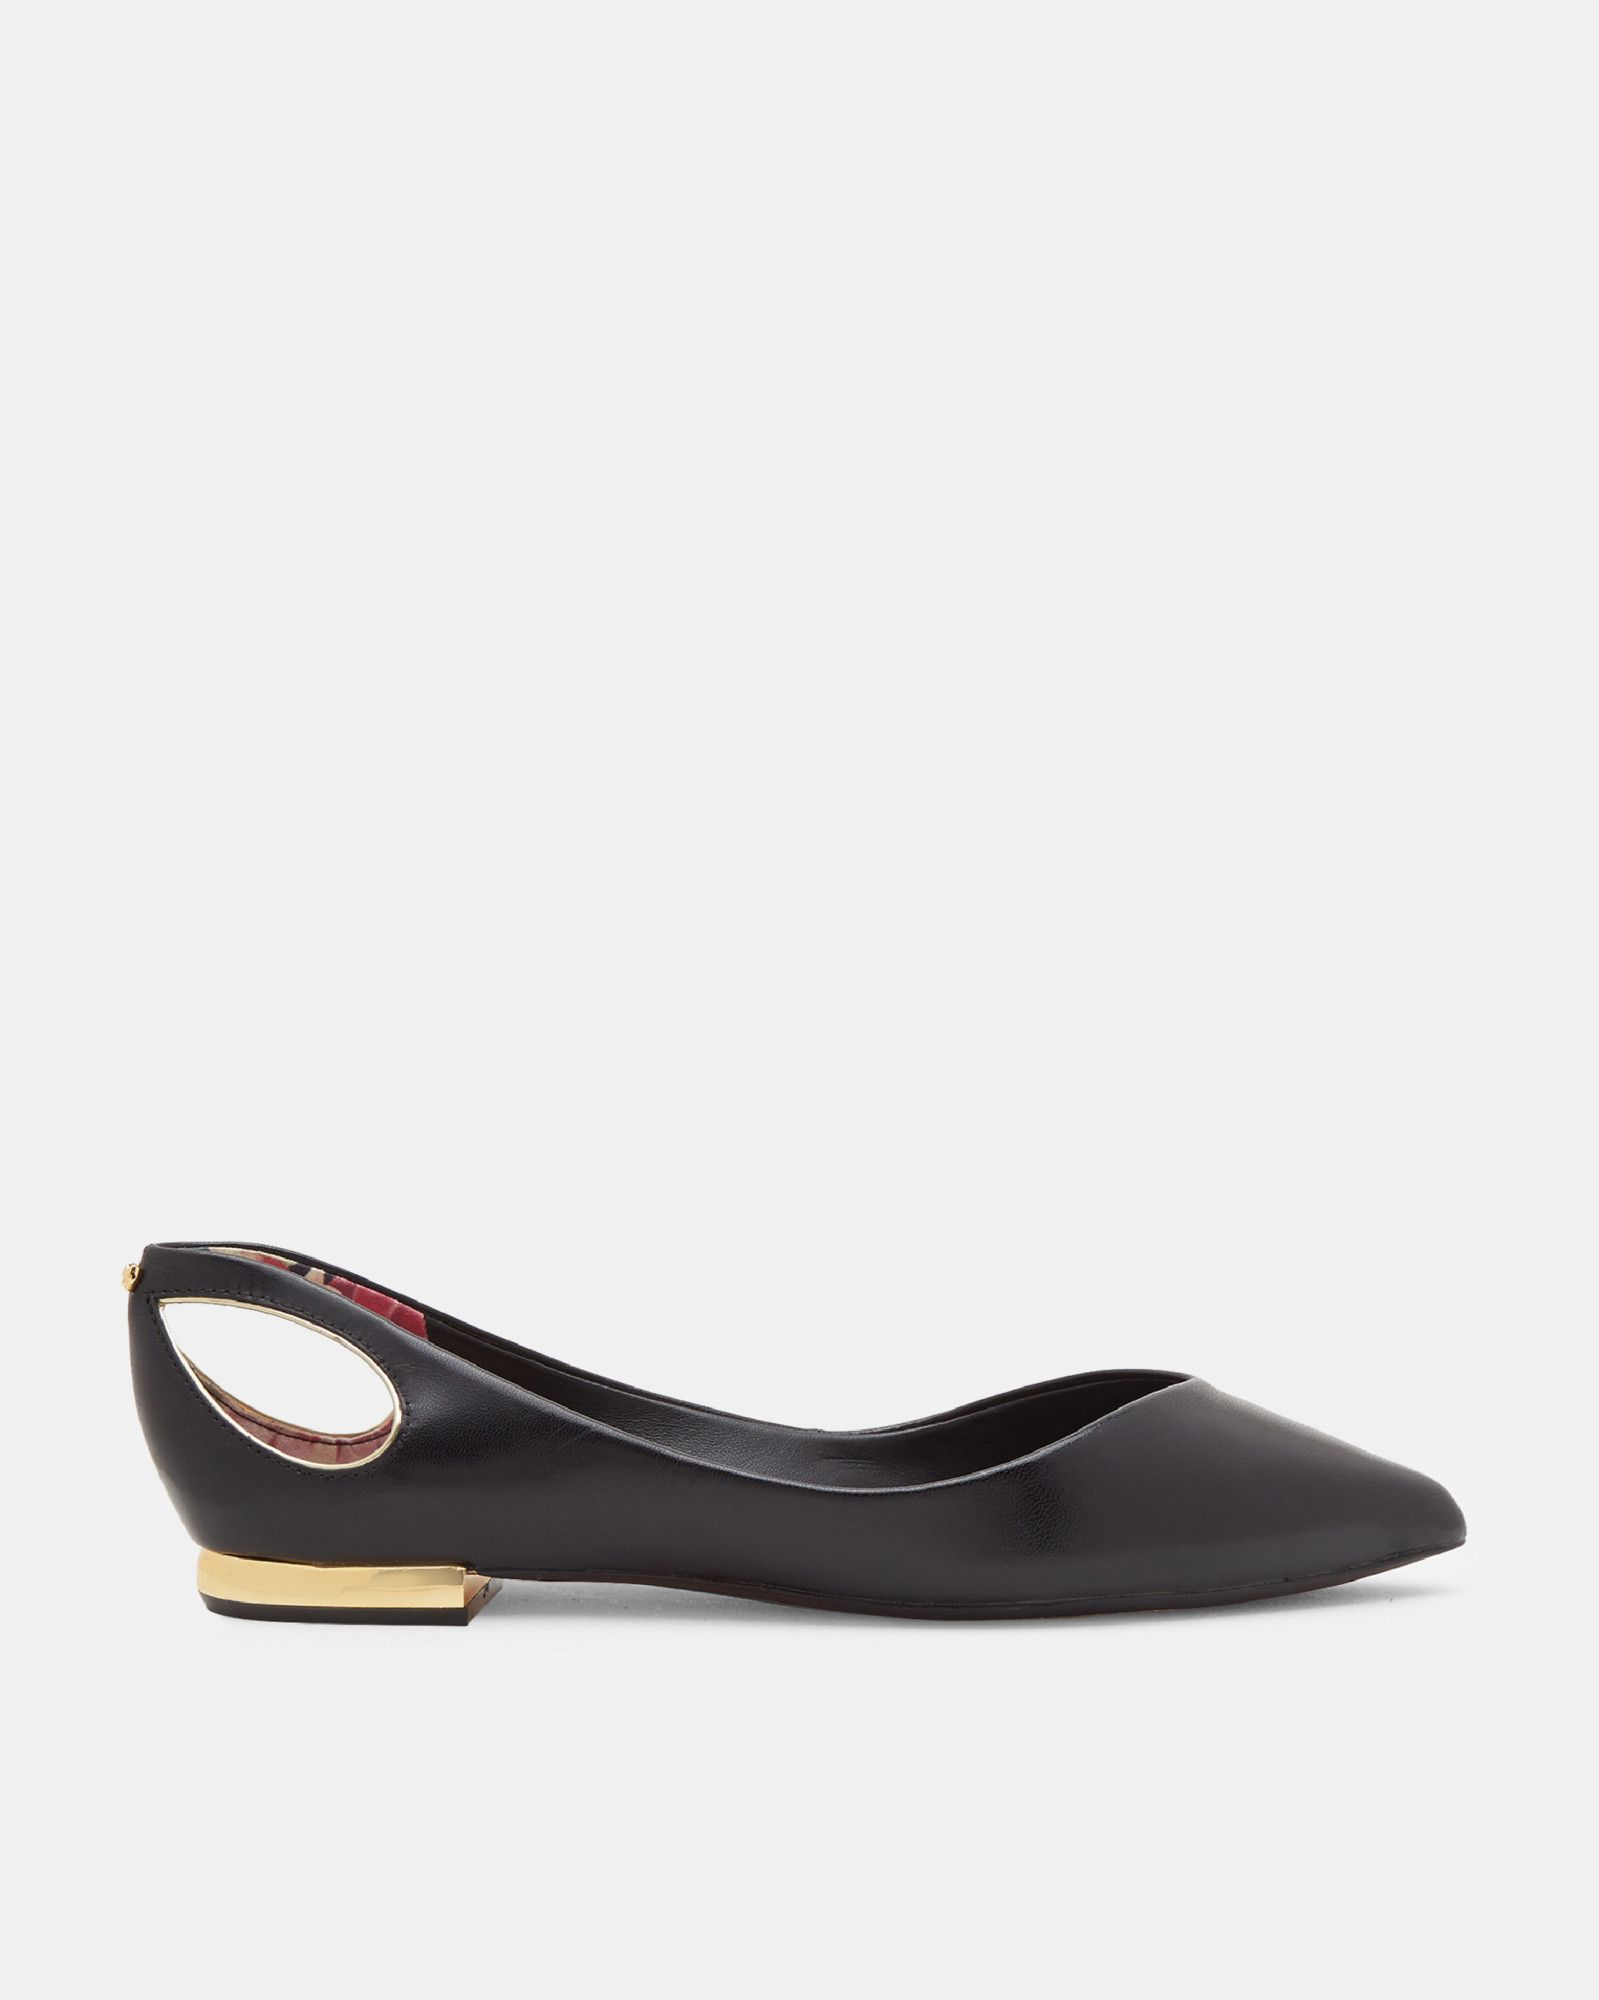 5e092b8b3 Ted Baker Cut-out pointed flats Black